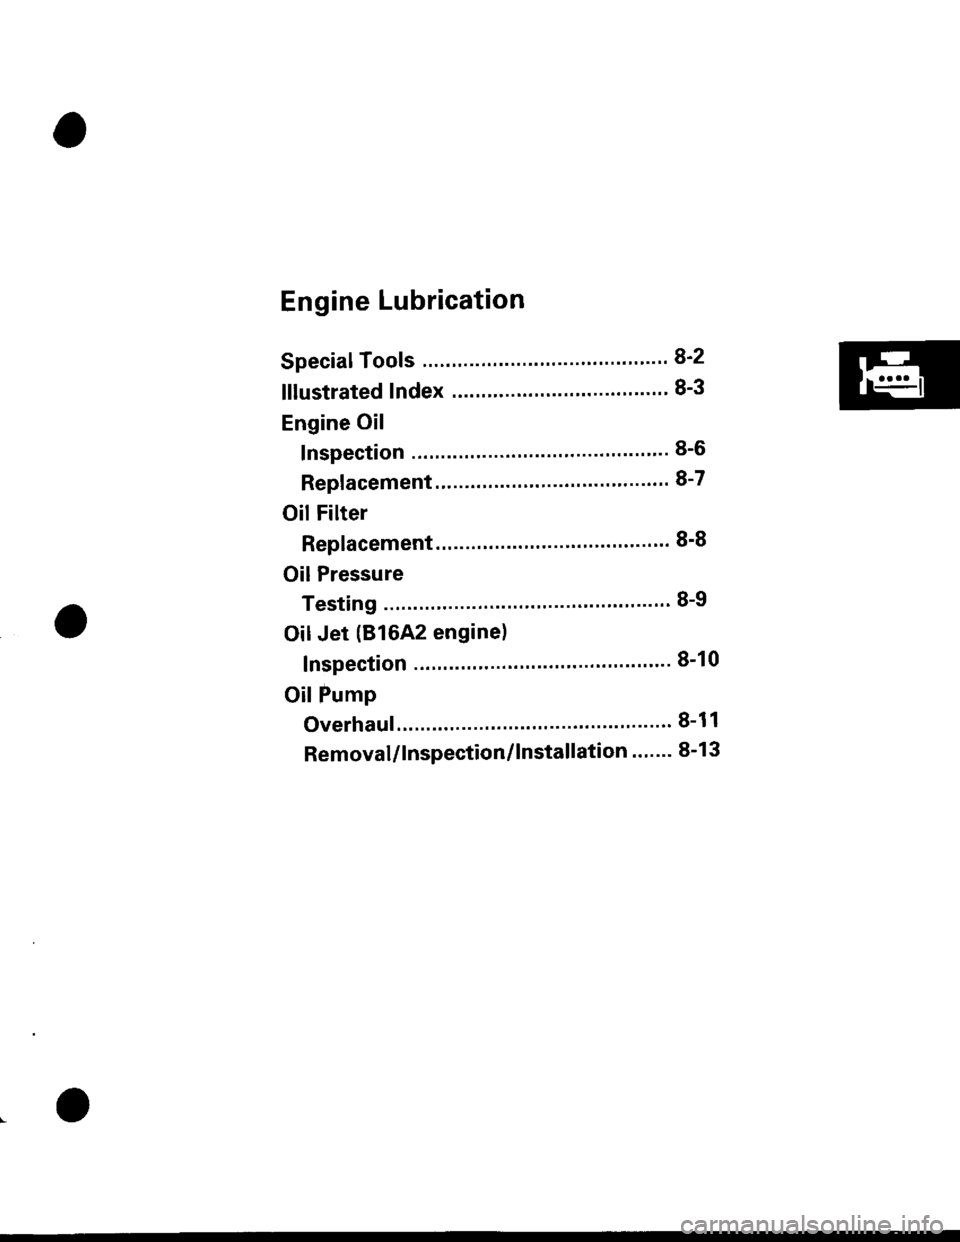 Honda Civic Oil Filter Location Schematic Electrical Wiring Diagrams Saturn Sl Fuel 1999 6 G Workshop Manual 1988 Accord